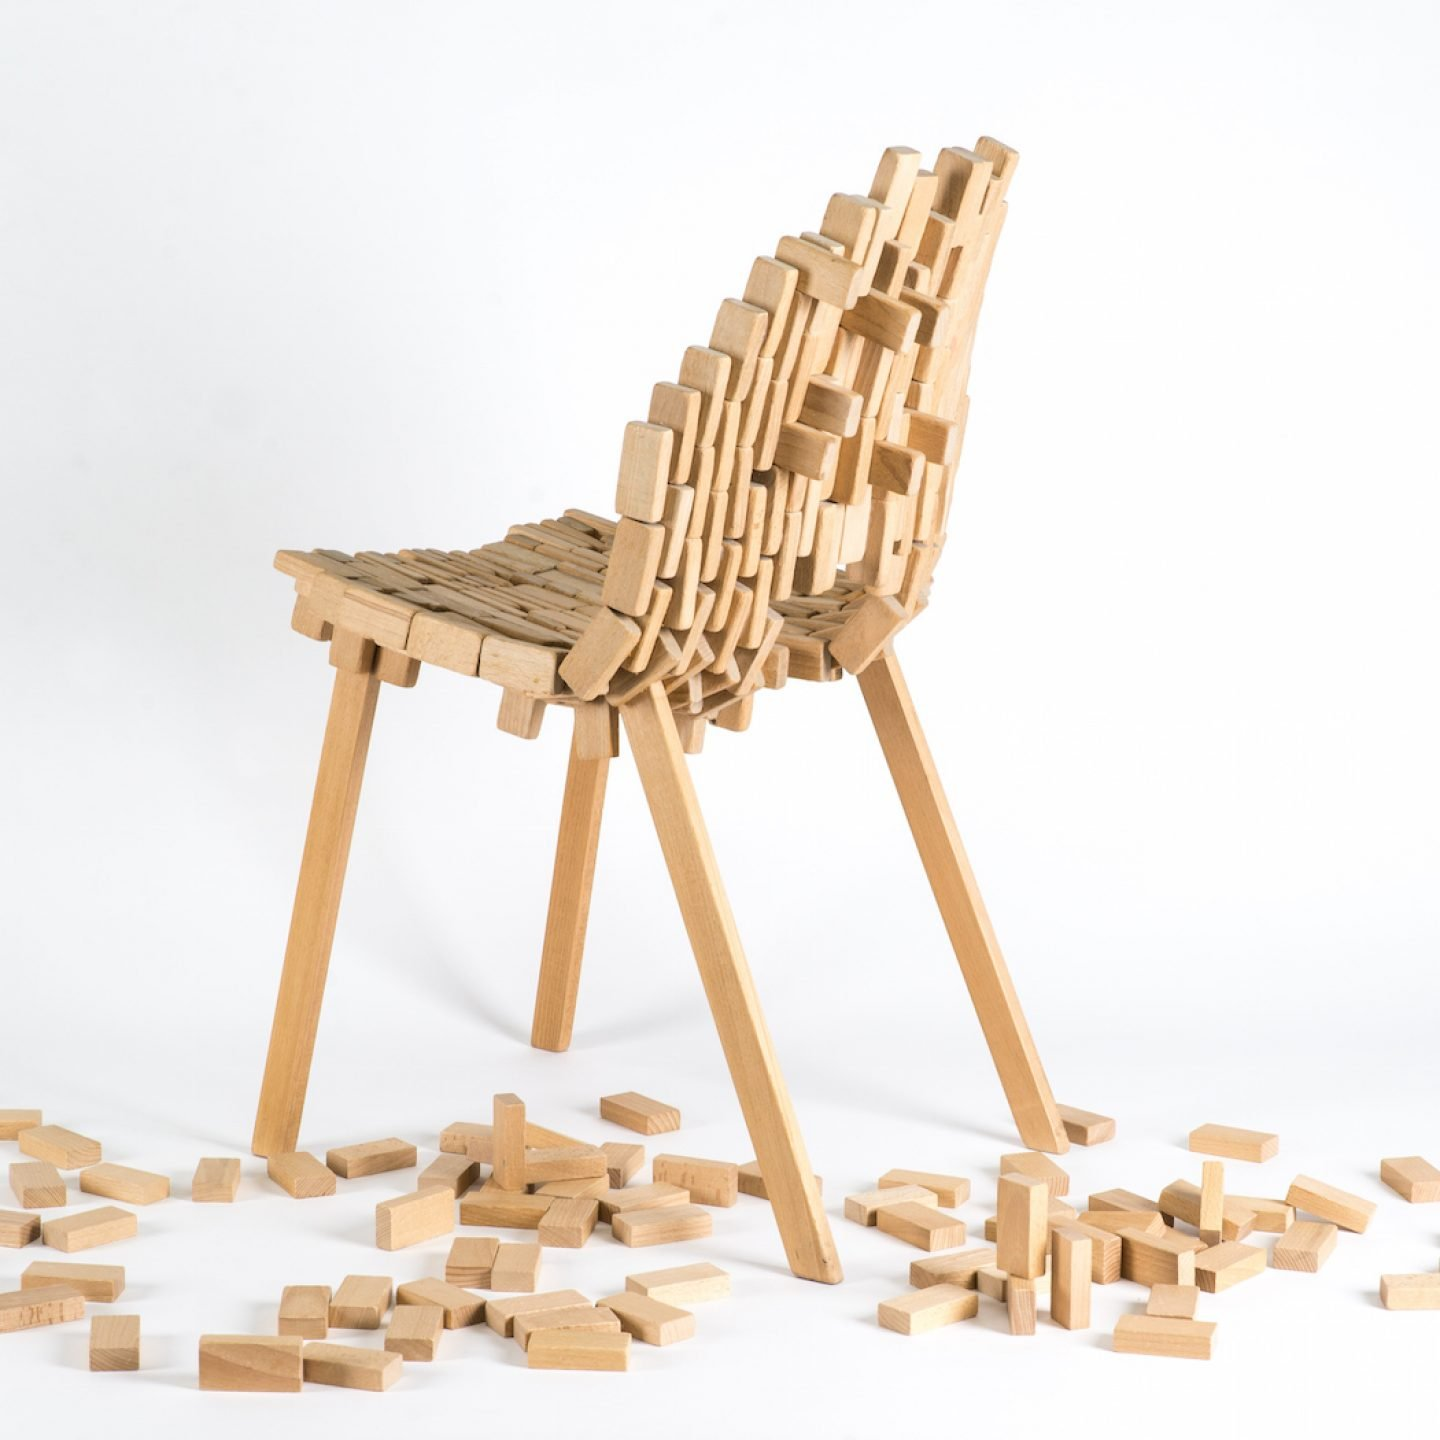 Bricks-chair-05